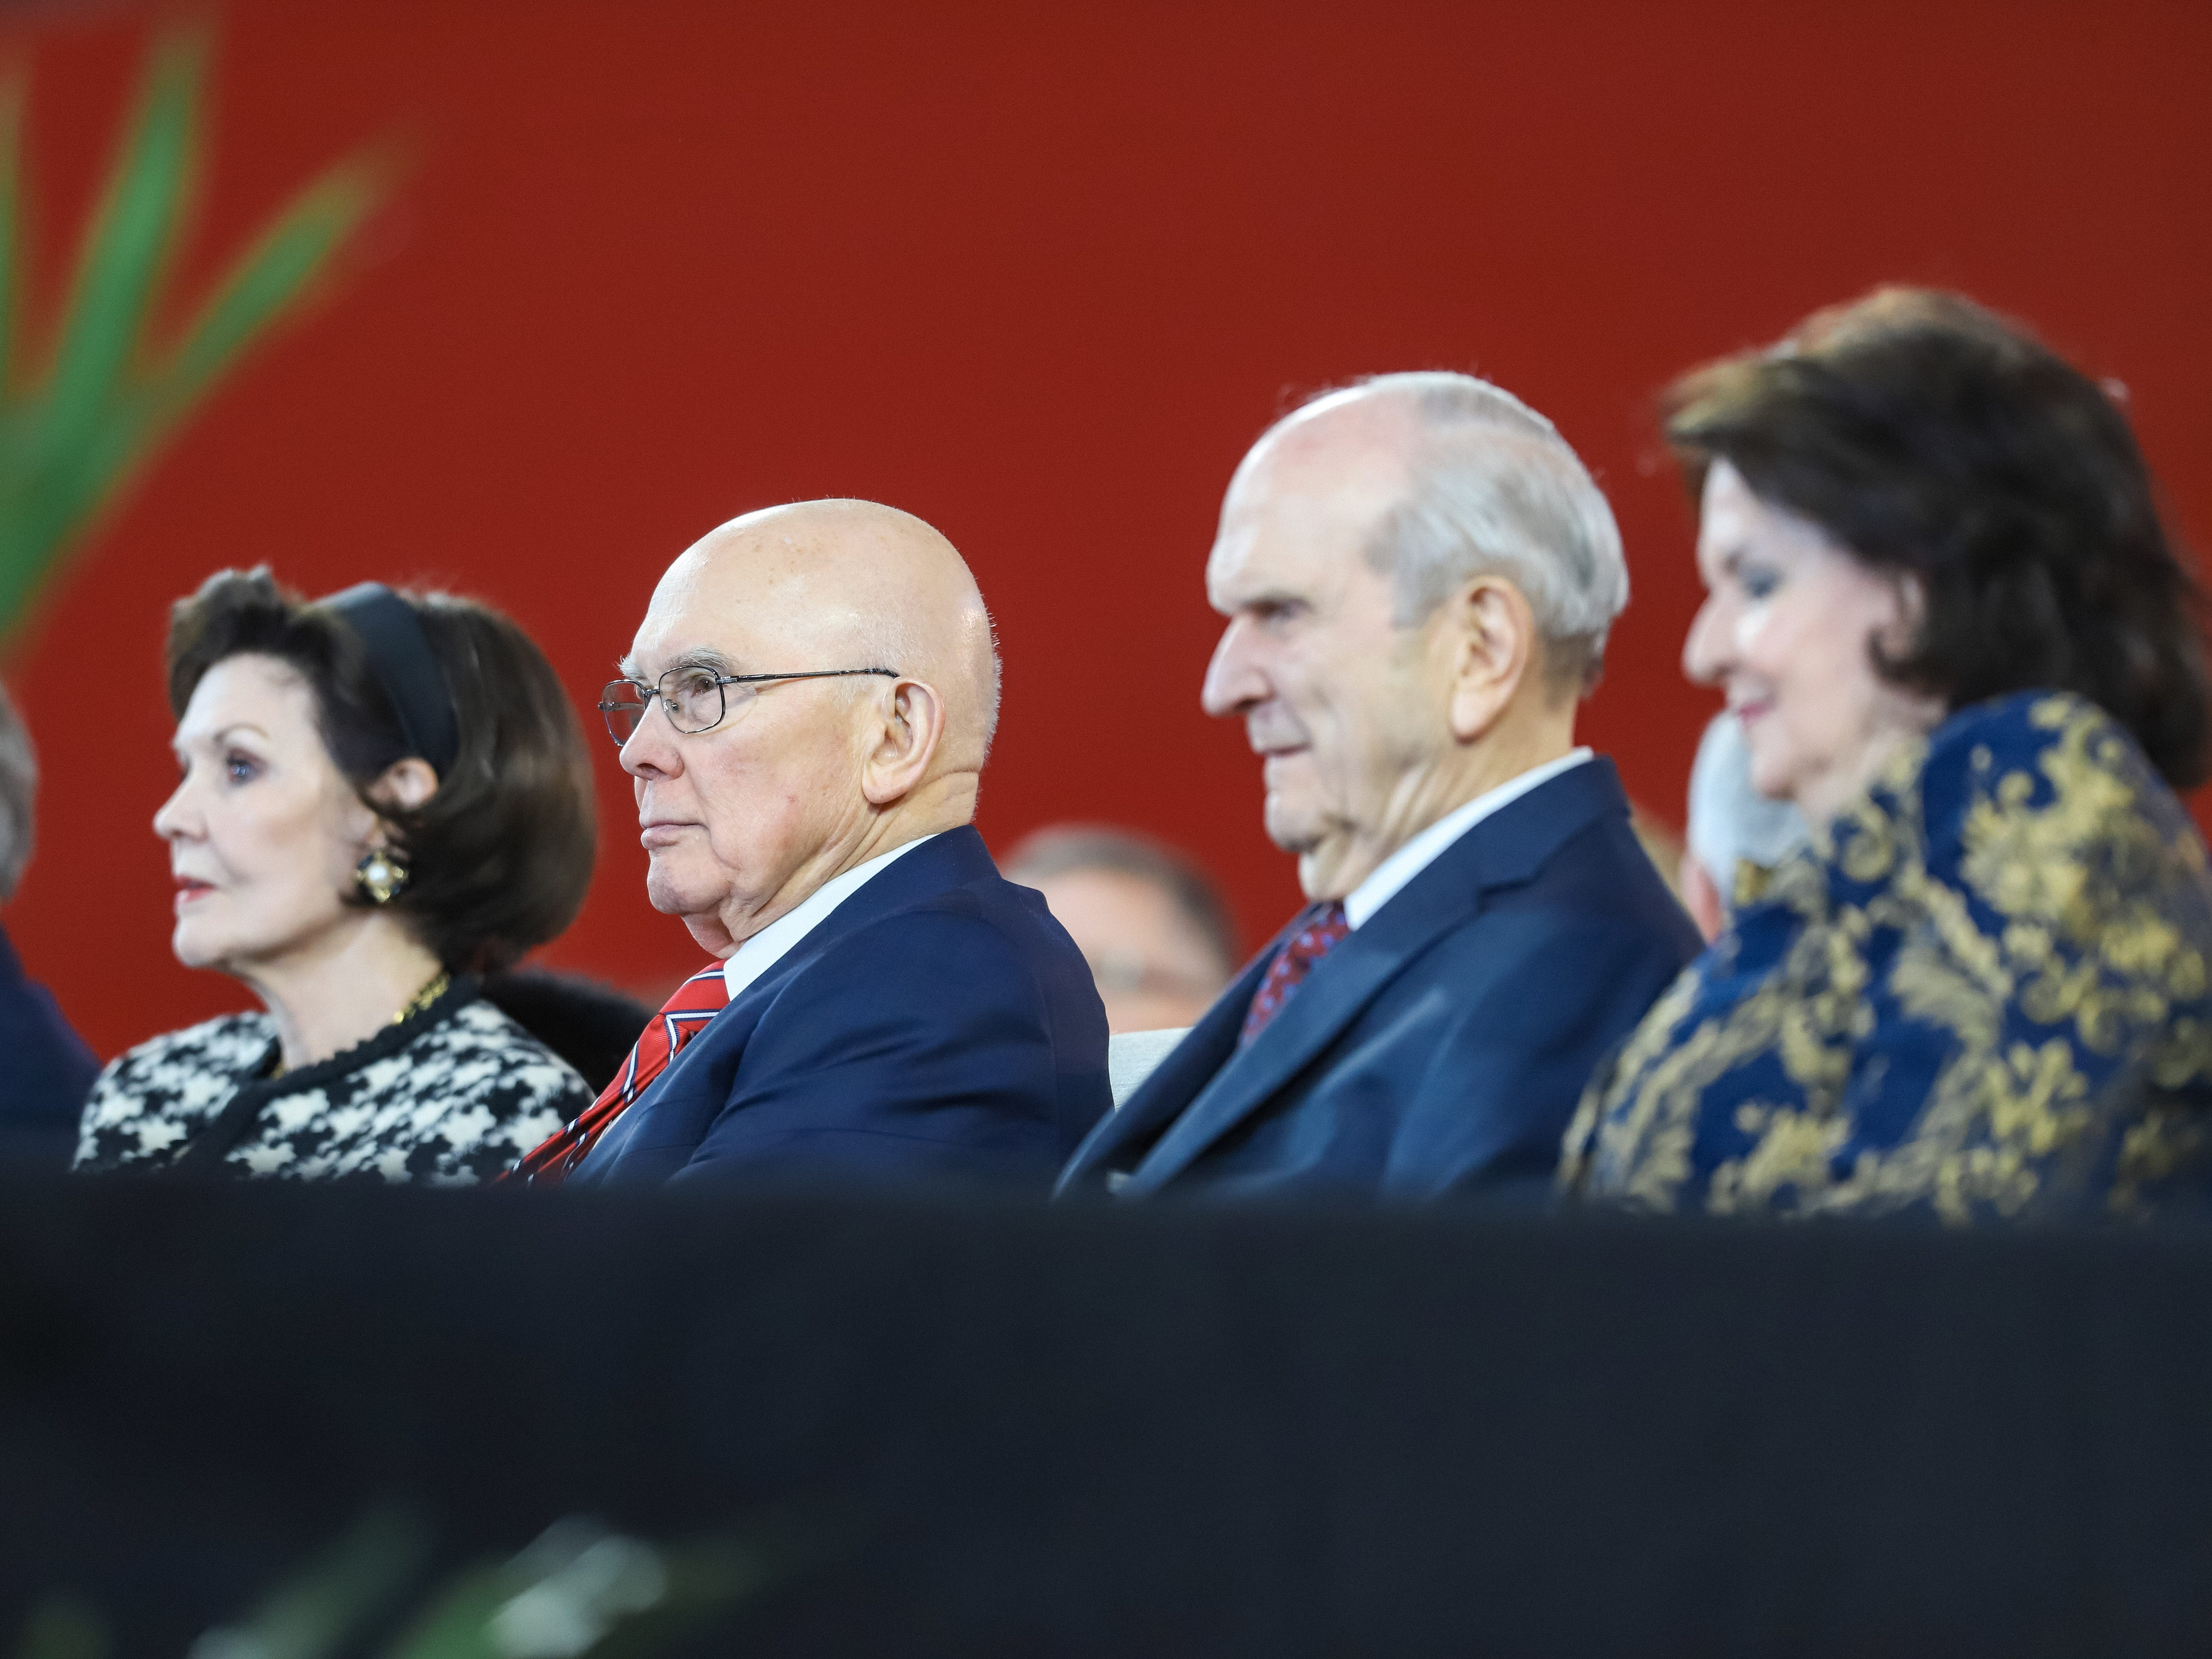 Dallin Oaks (left), first counselor in the first presidency in The Church of Jesus Christ of Latter-day Saints, sits beside President Russell Nelson, at State Farm Stadium in Glendale on Feb. 10, 2019.